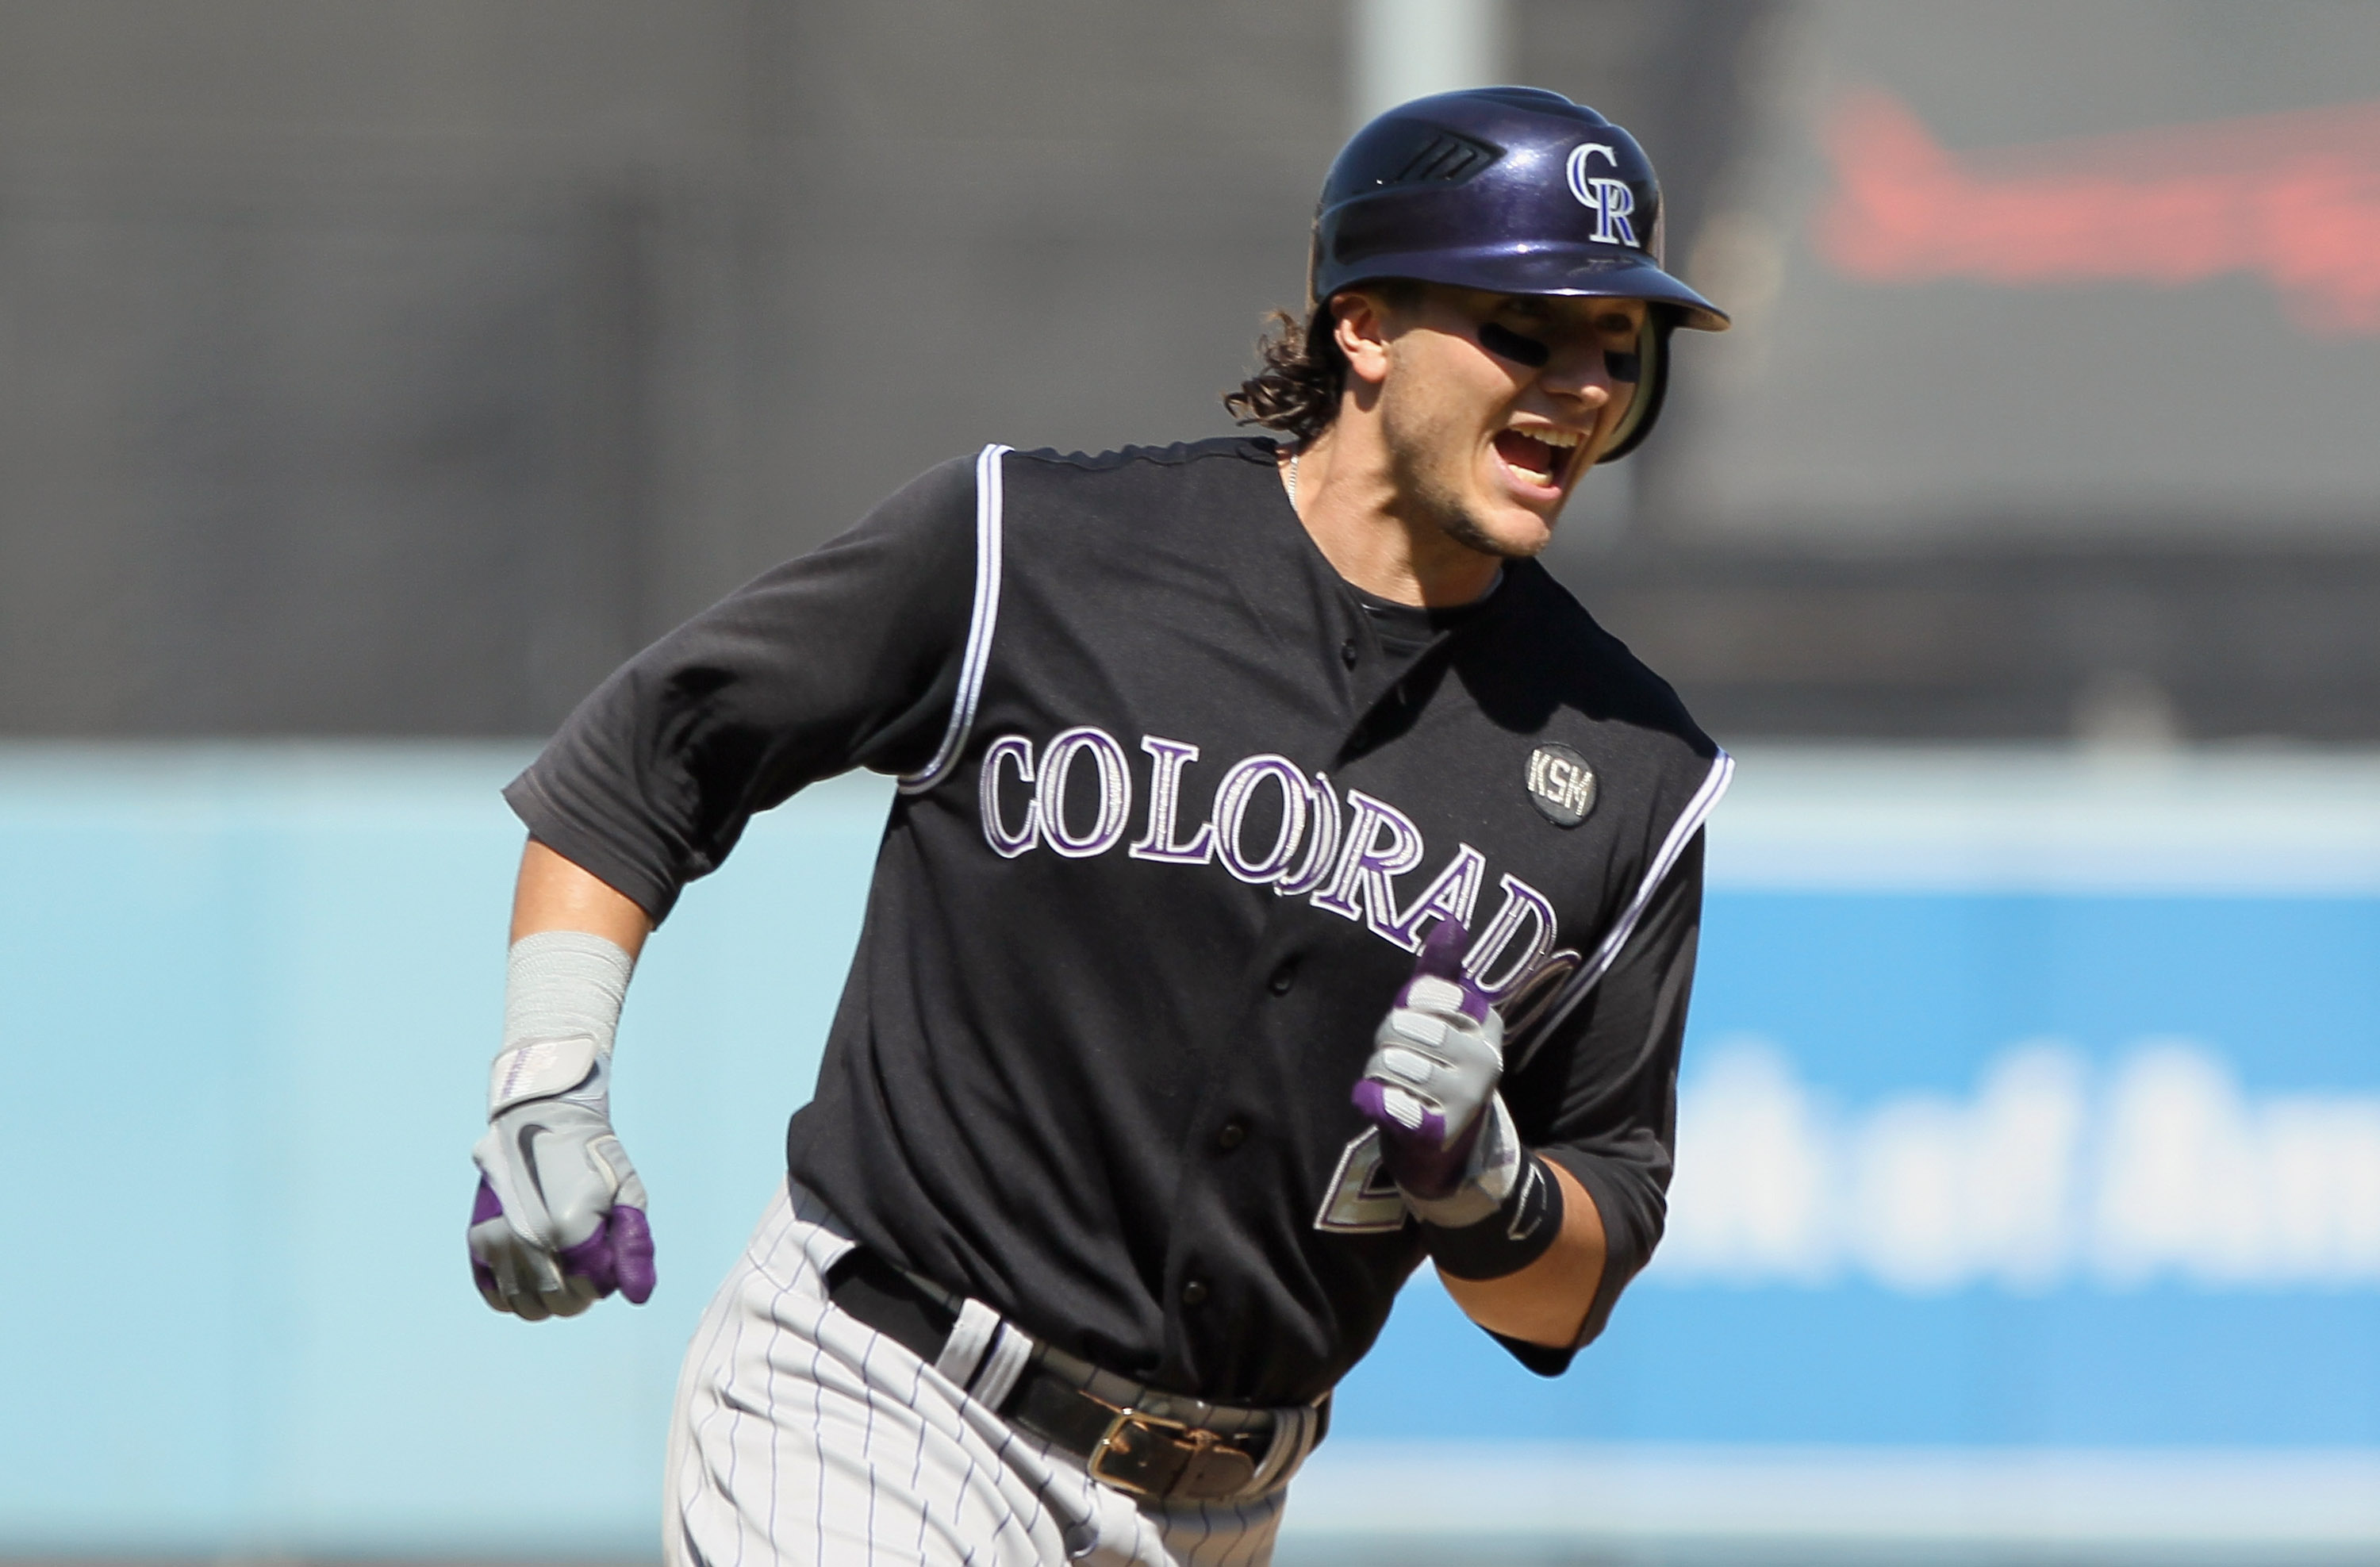 LOS ANGELES, CA - SEPTEMBER 18:  Troy Tulowitzki #2 of the Colorado Rockies celebrates as he rounds third base after hitting his second two-run home run of the game against the Los Angeles Dodgers in the fifth inning at Dodger Stadium on September 18, 201